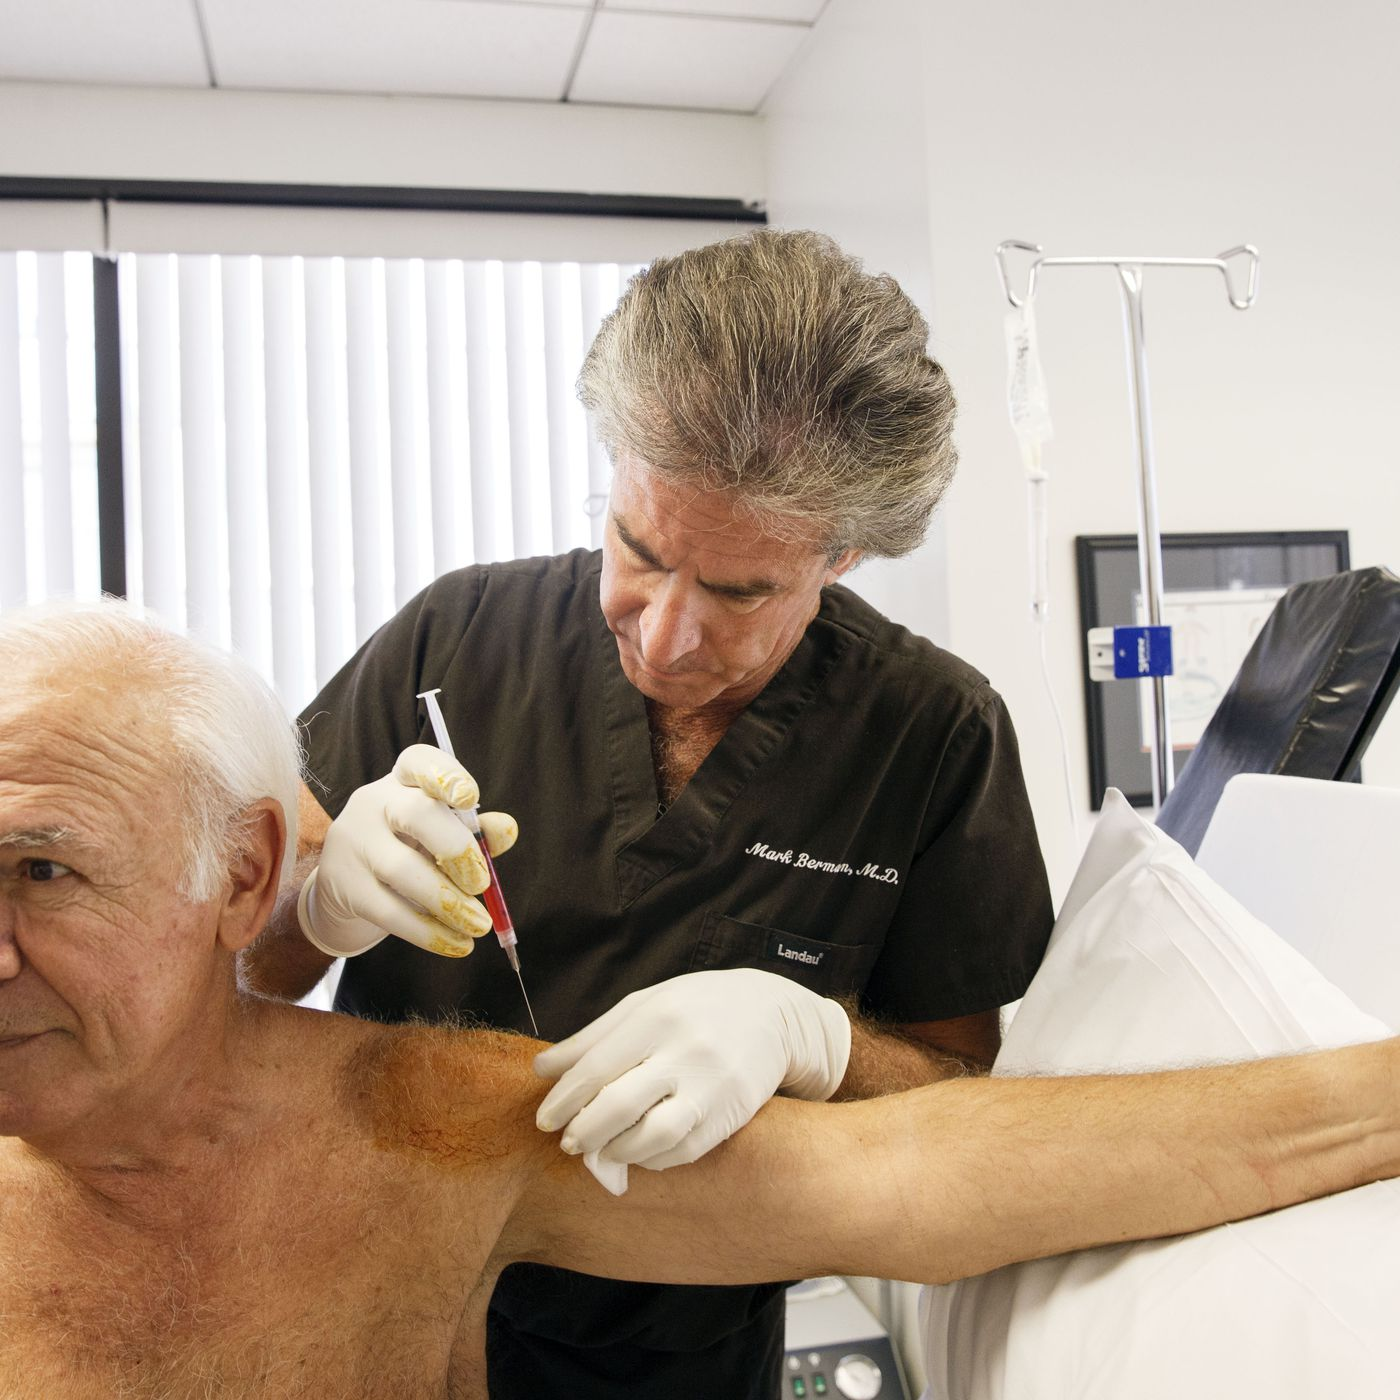 Stem cell therapy: FDA investigates clinics offering